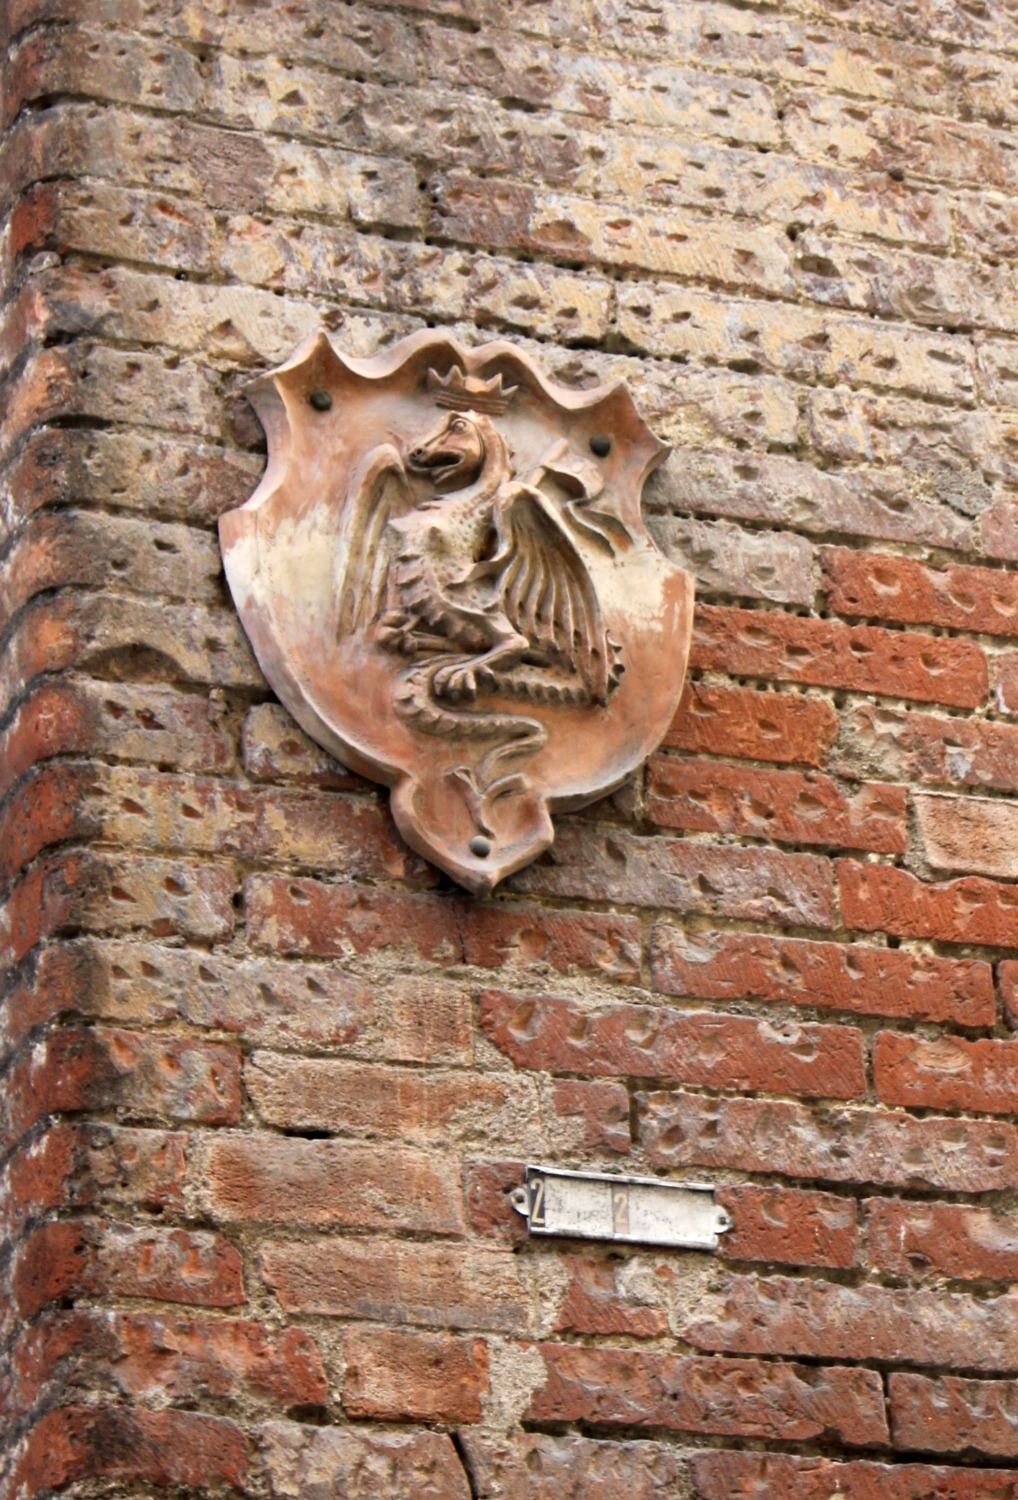 A dragon, one of the shields and emblems showing the animals and symbols representing Siena's 17 areas or contrada - exploring Siena with kids, our tour discovering art, history and animals